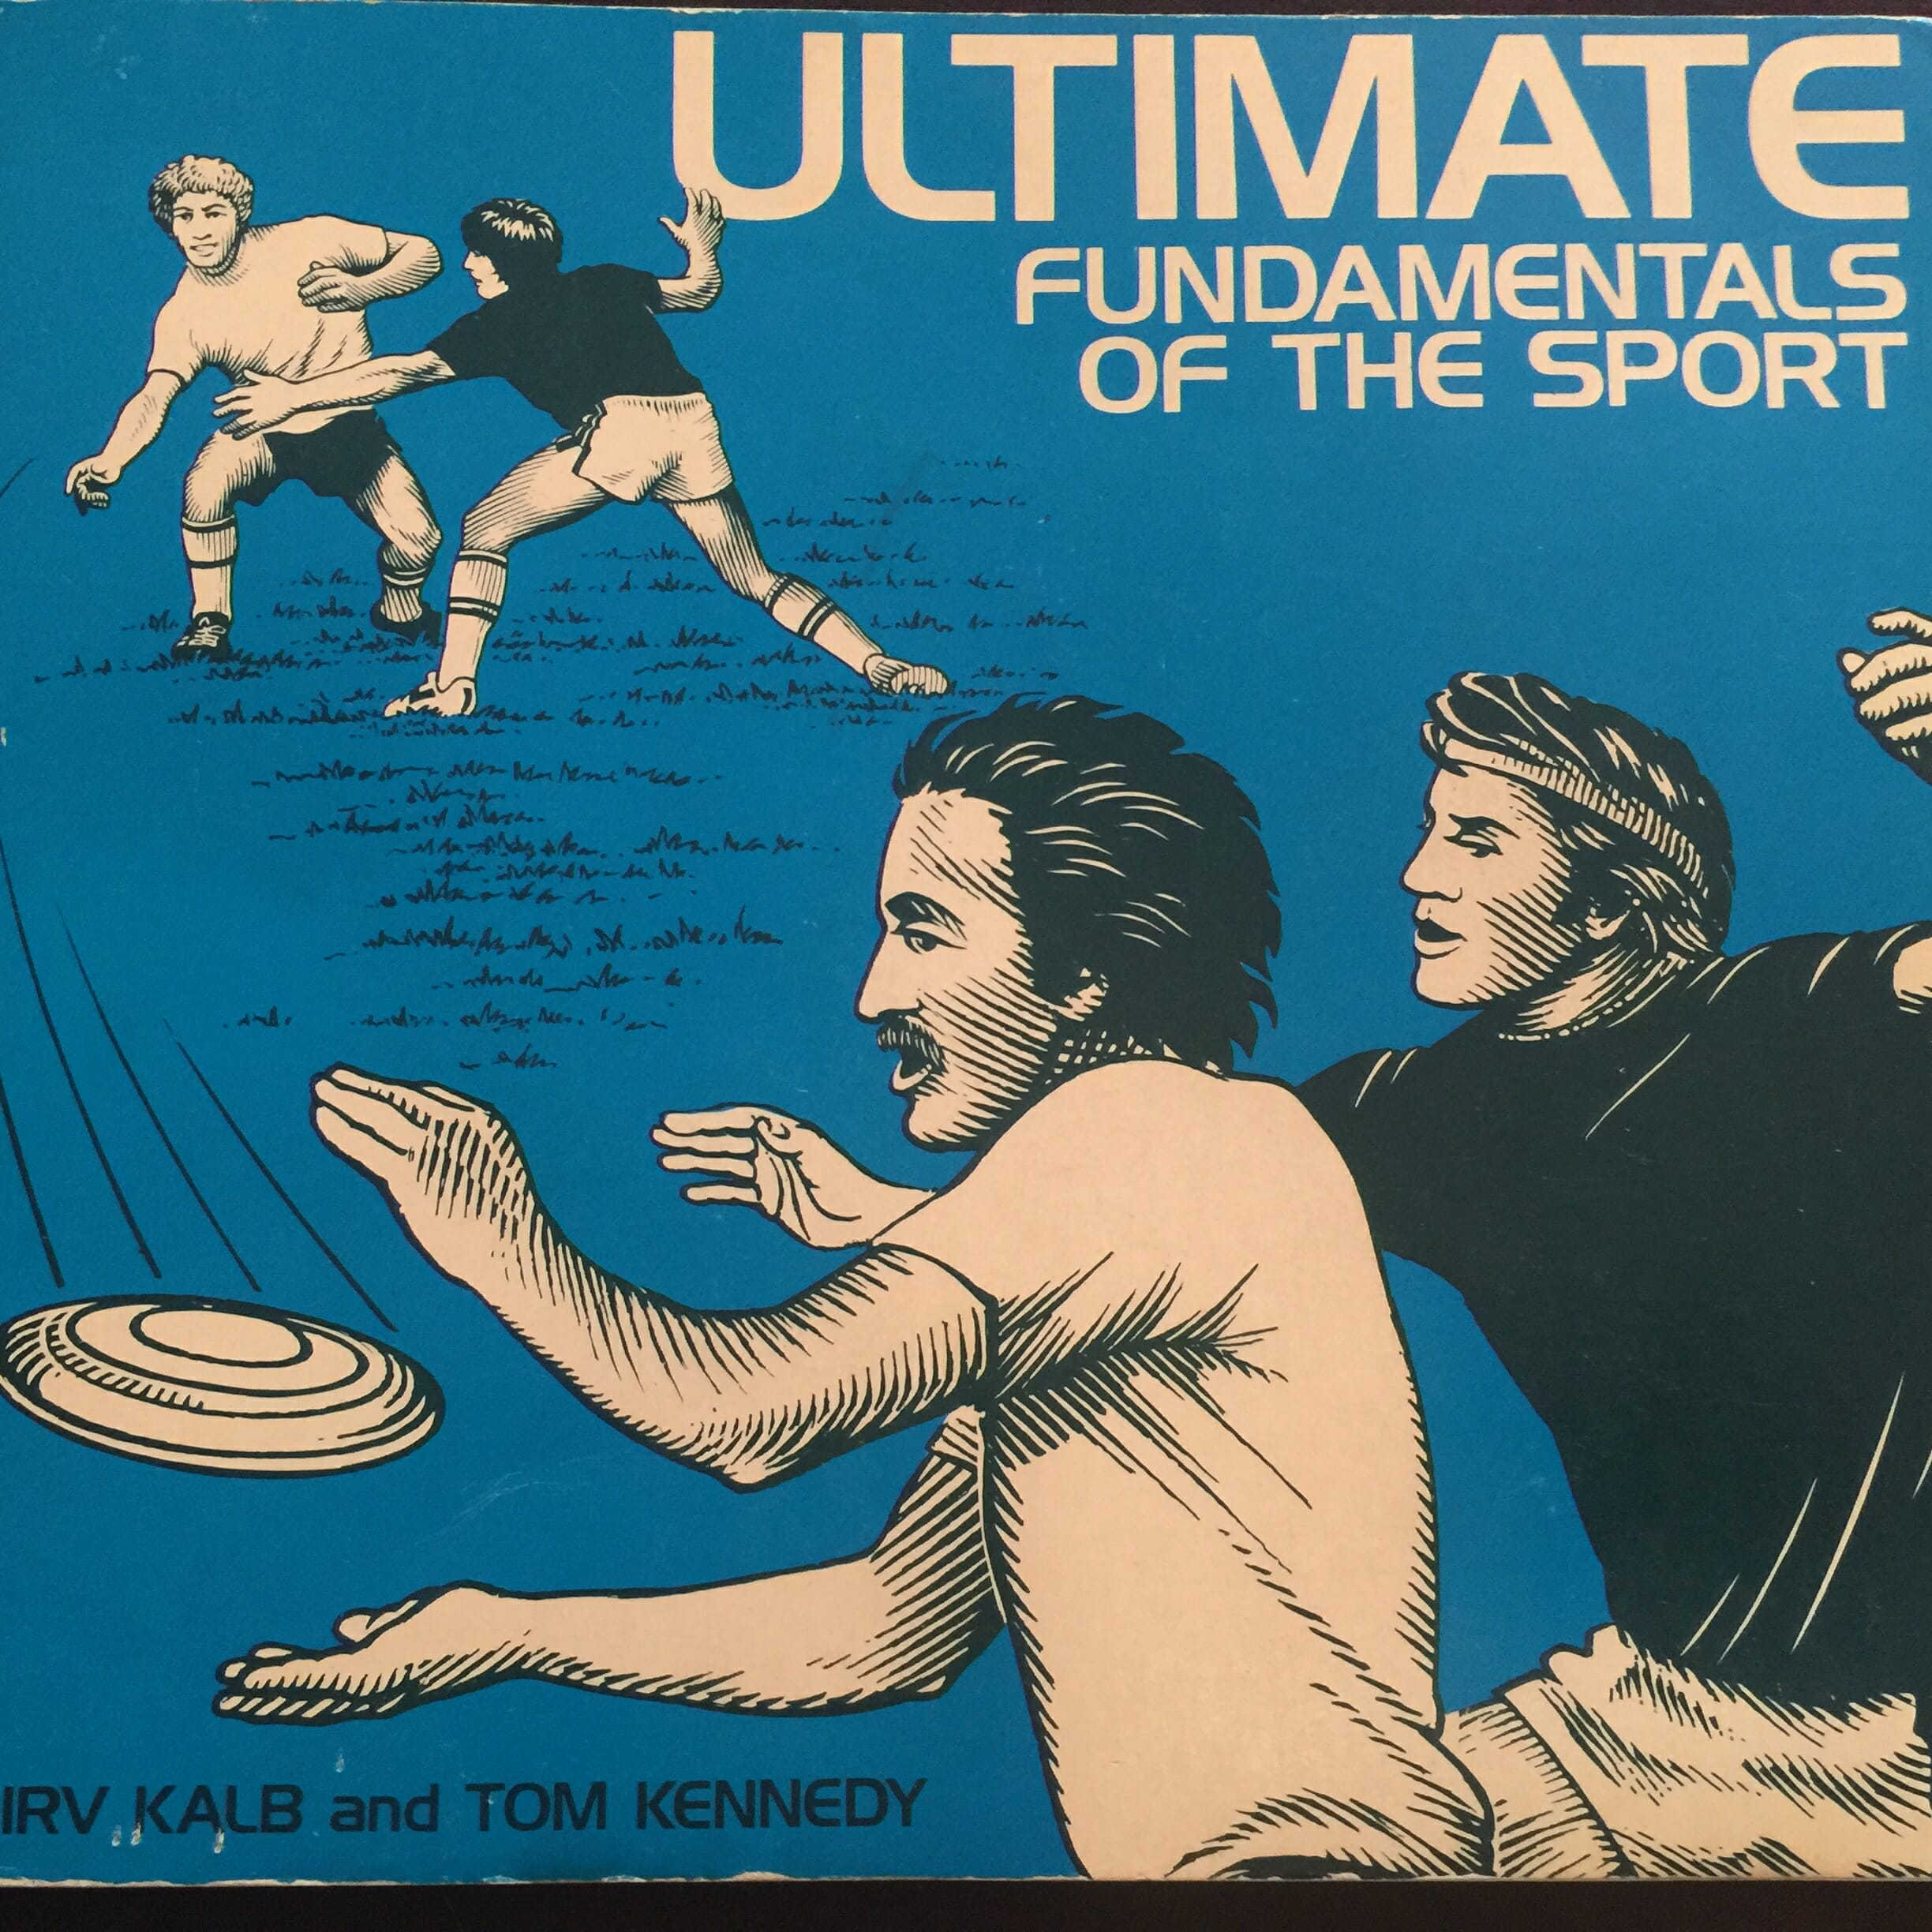 Ultimate: Fundamentals of the Sport.